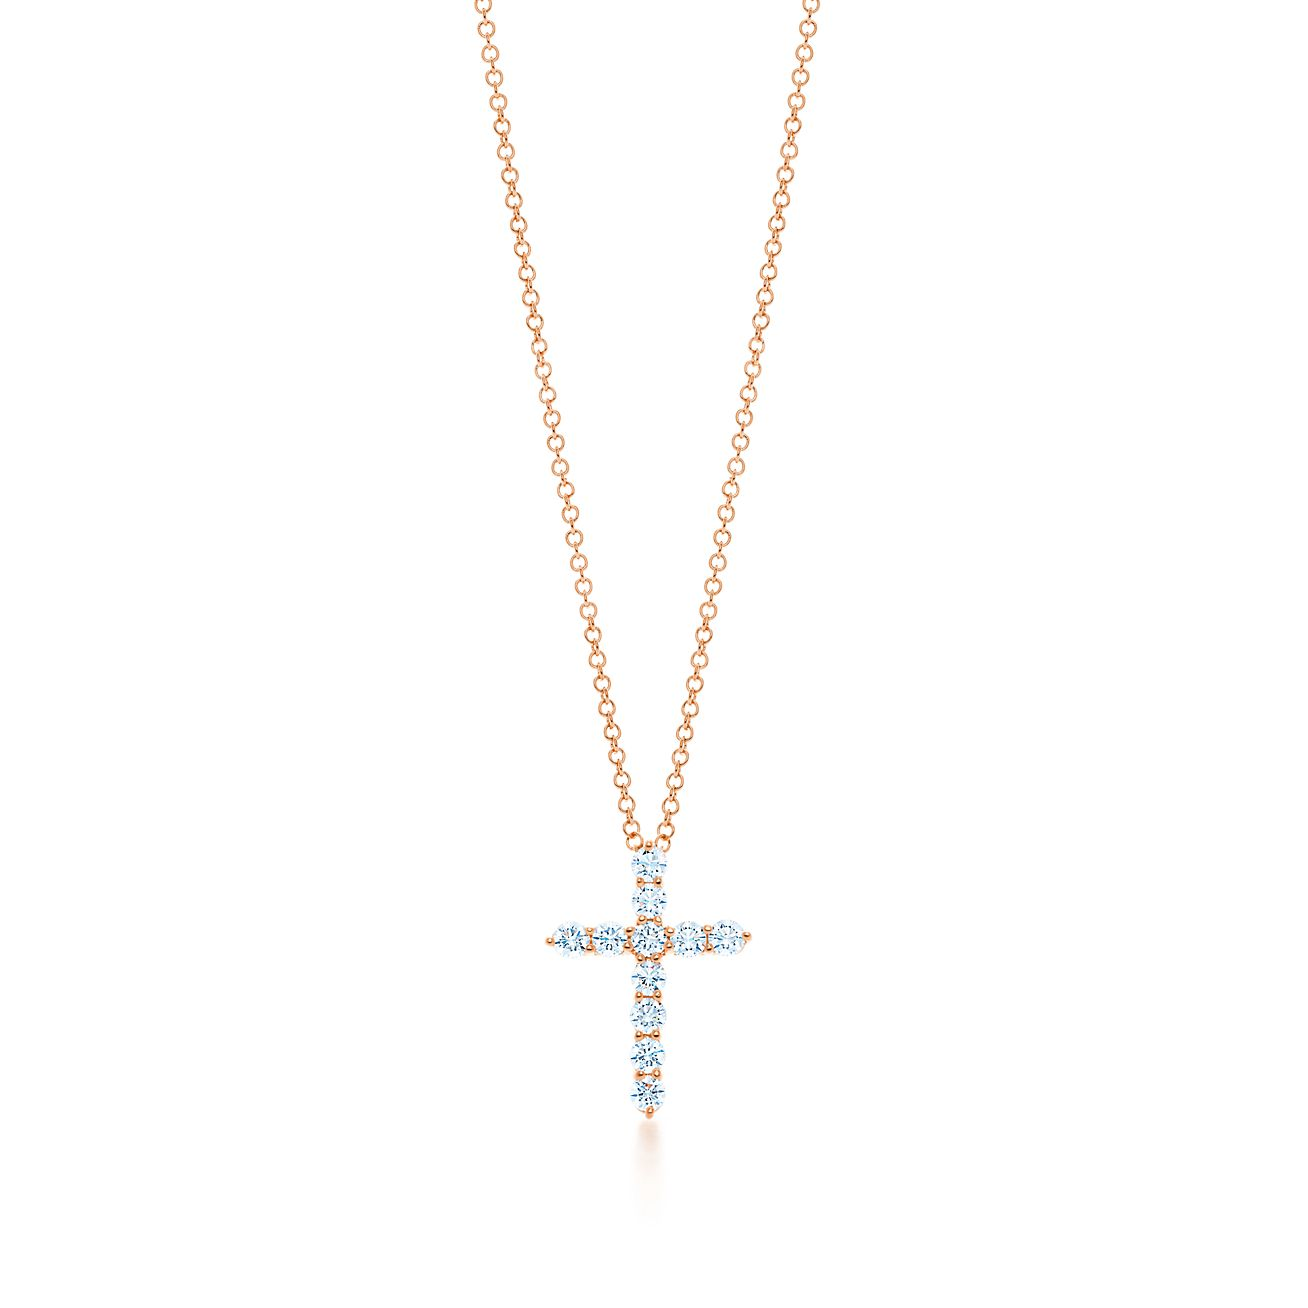 Cross pendant in 18k white gold with diamonds, mini - Size Tiffany & Co.